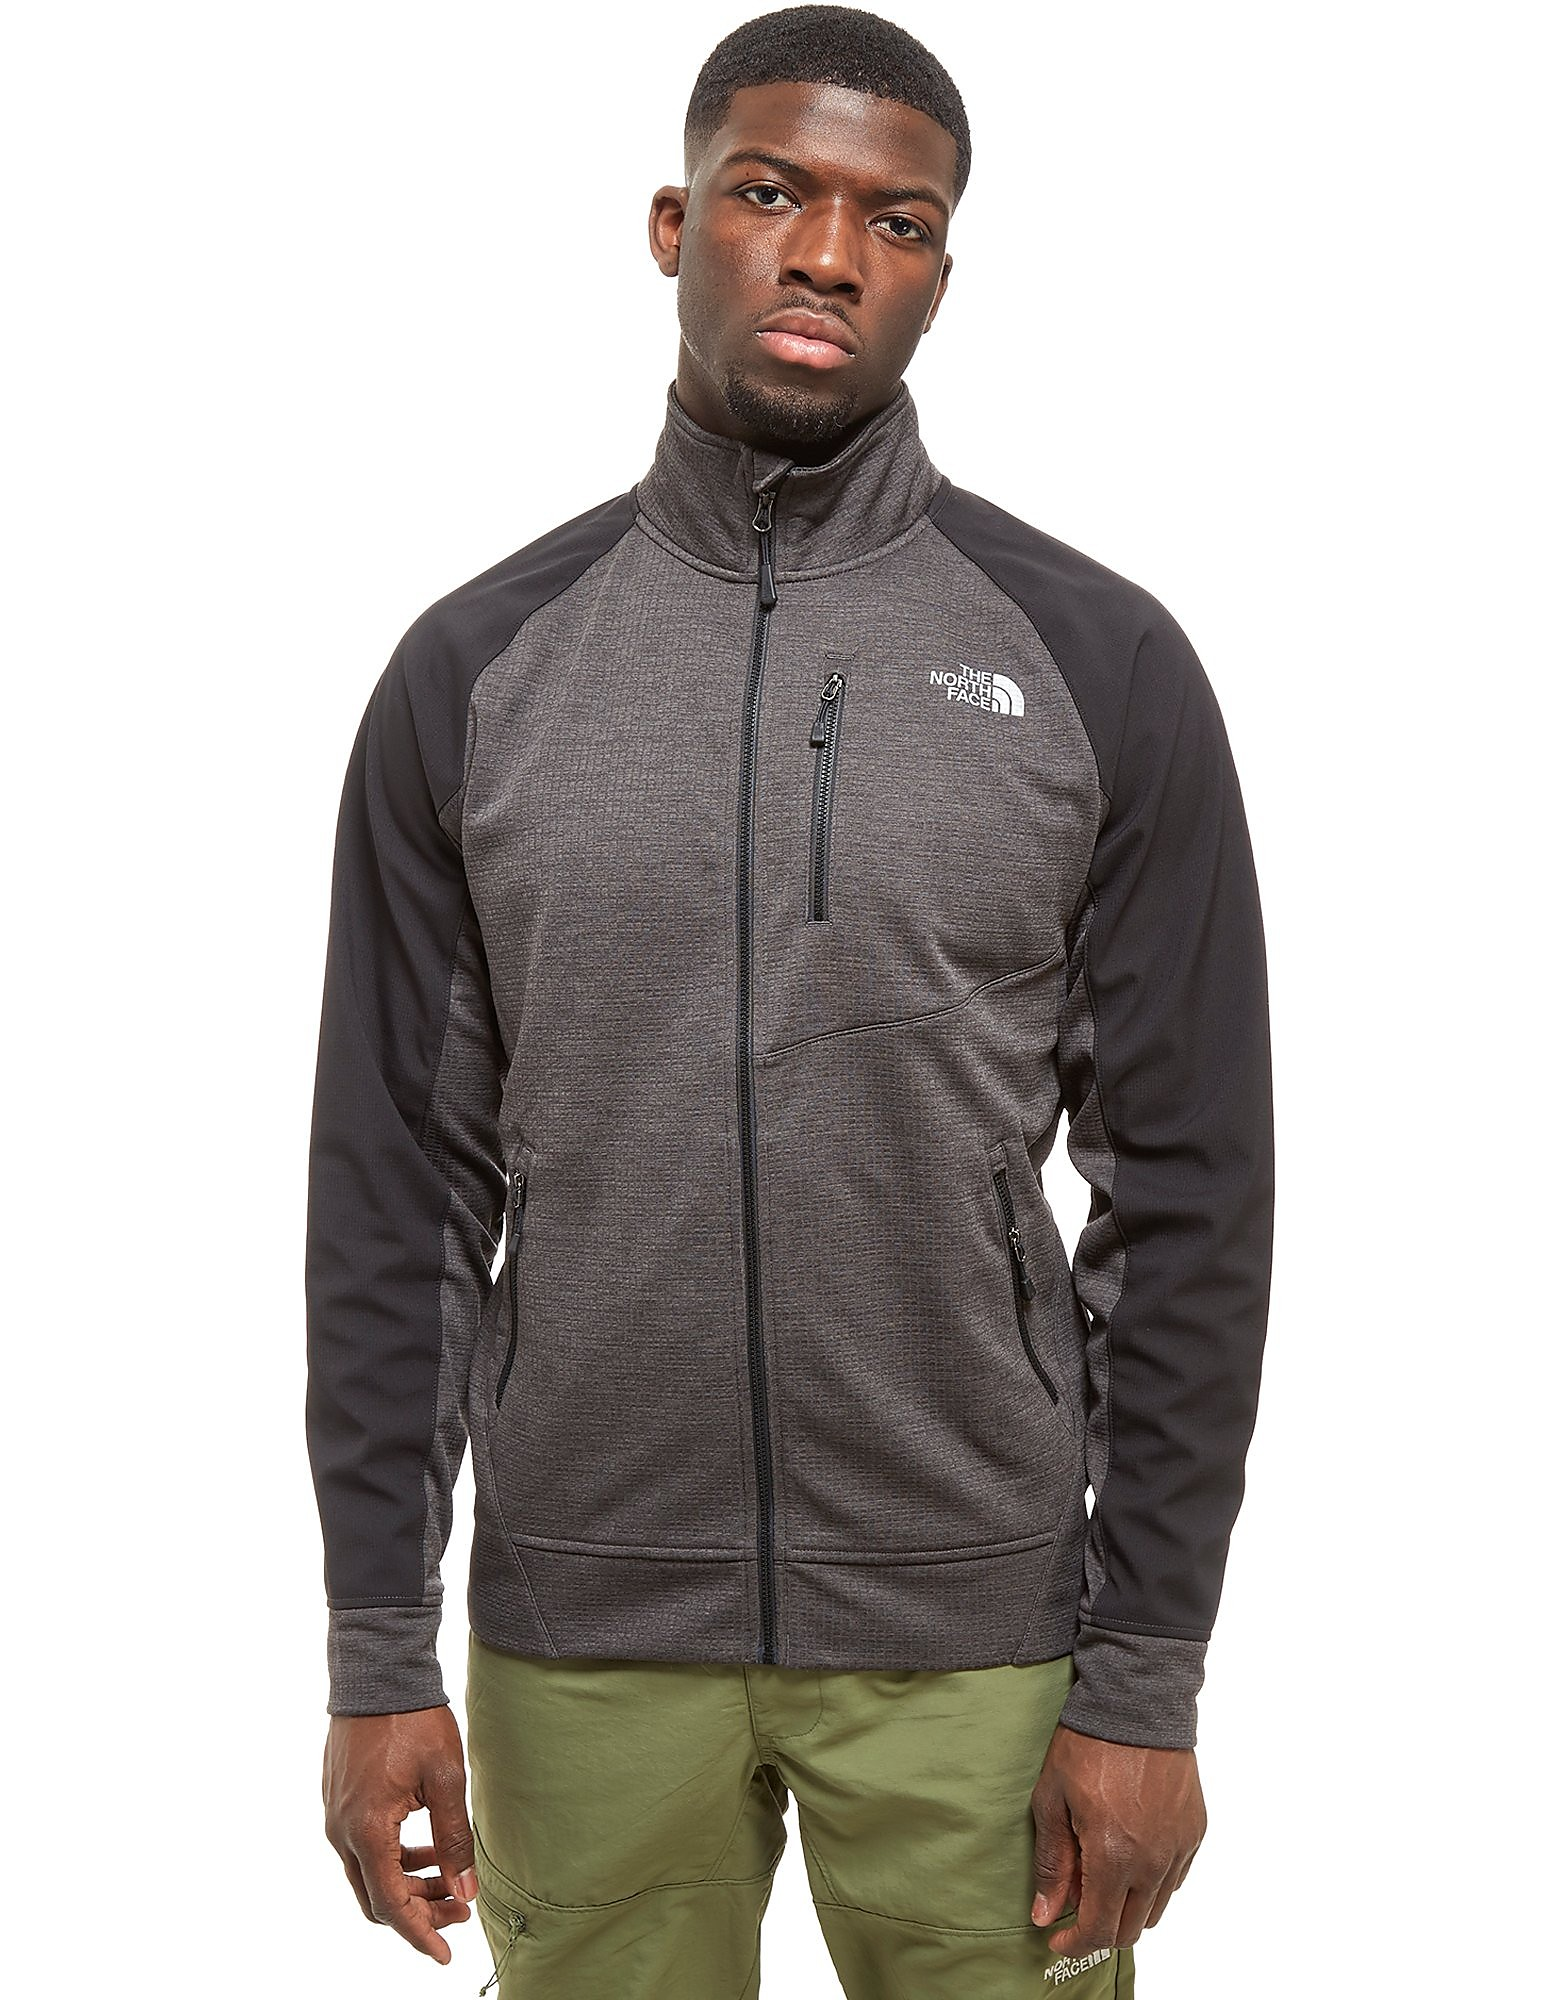 The North Face Veste zippée Tenacious Grid Track Top Homme - Only at JD - Grey, Grey